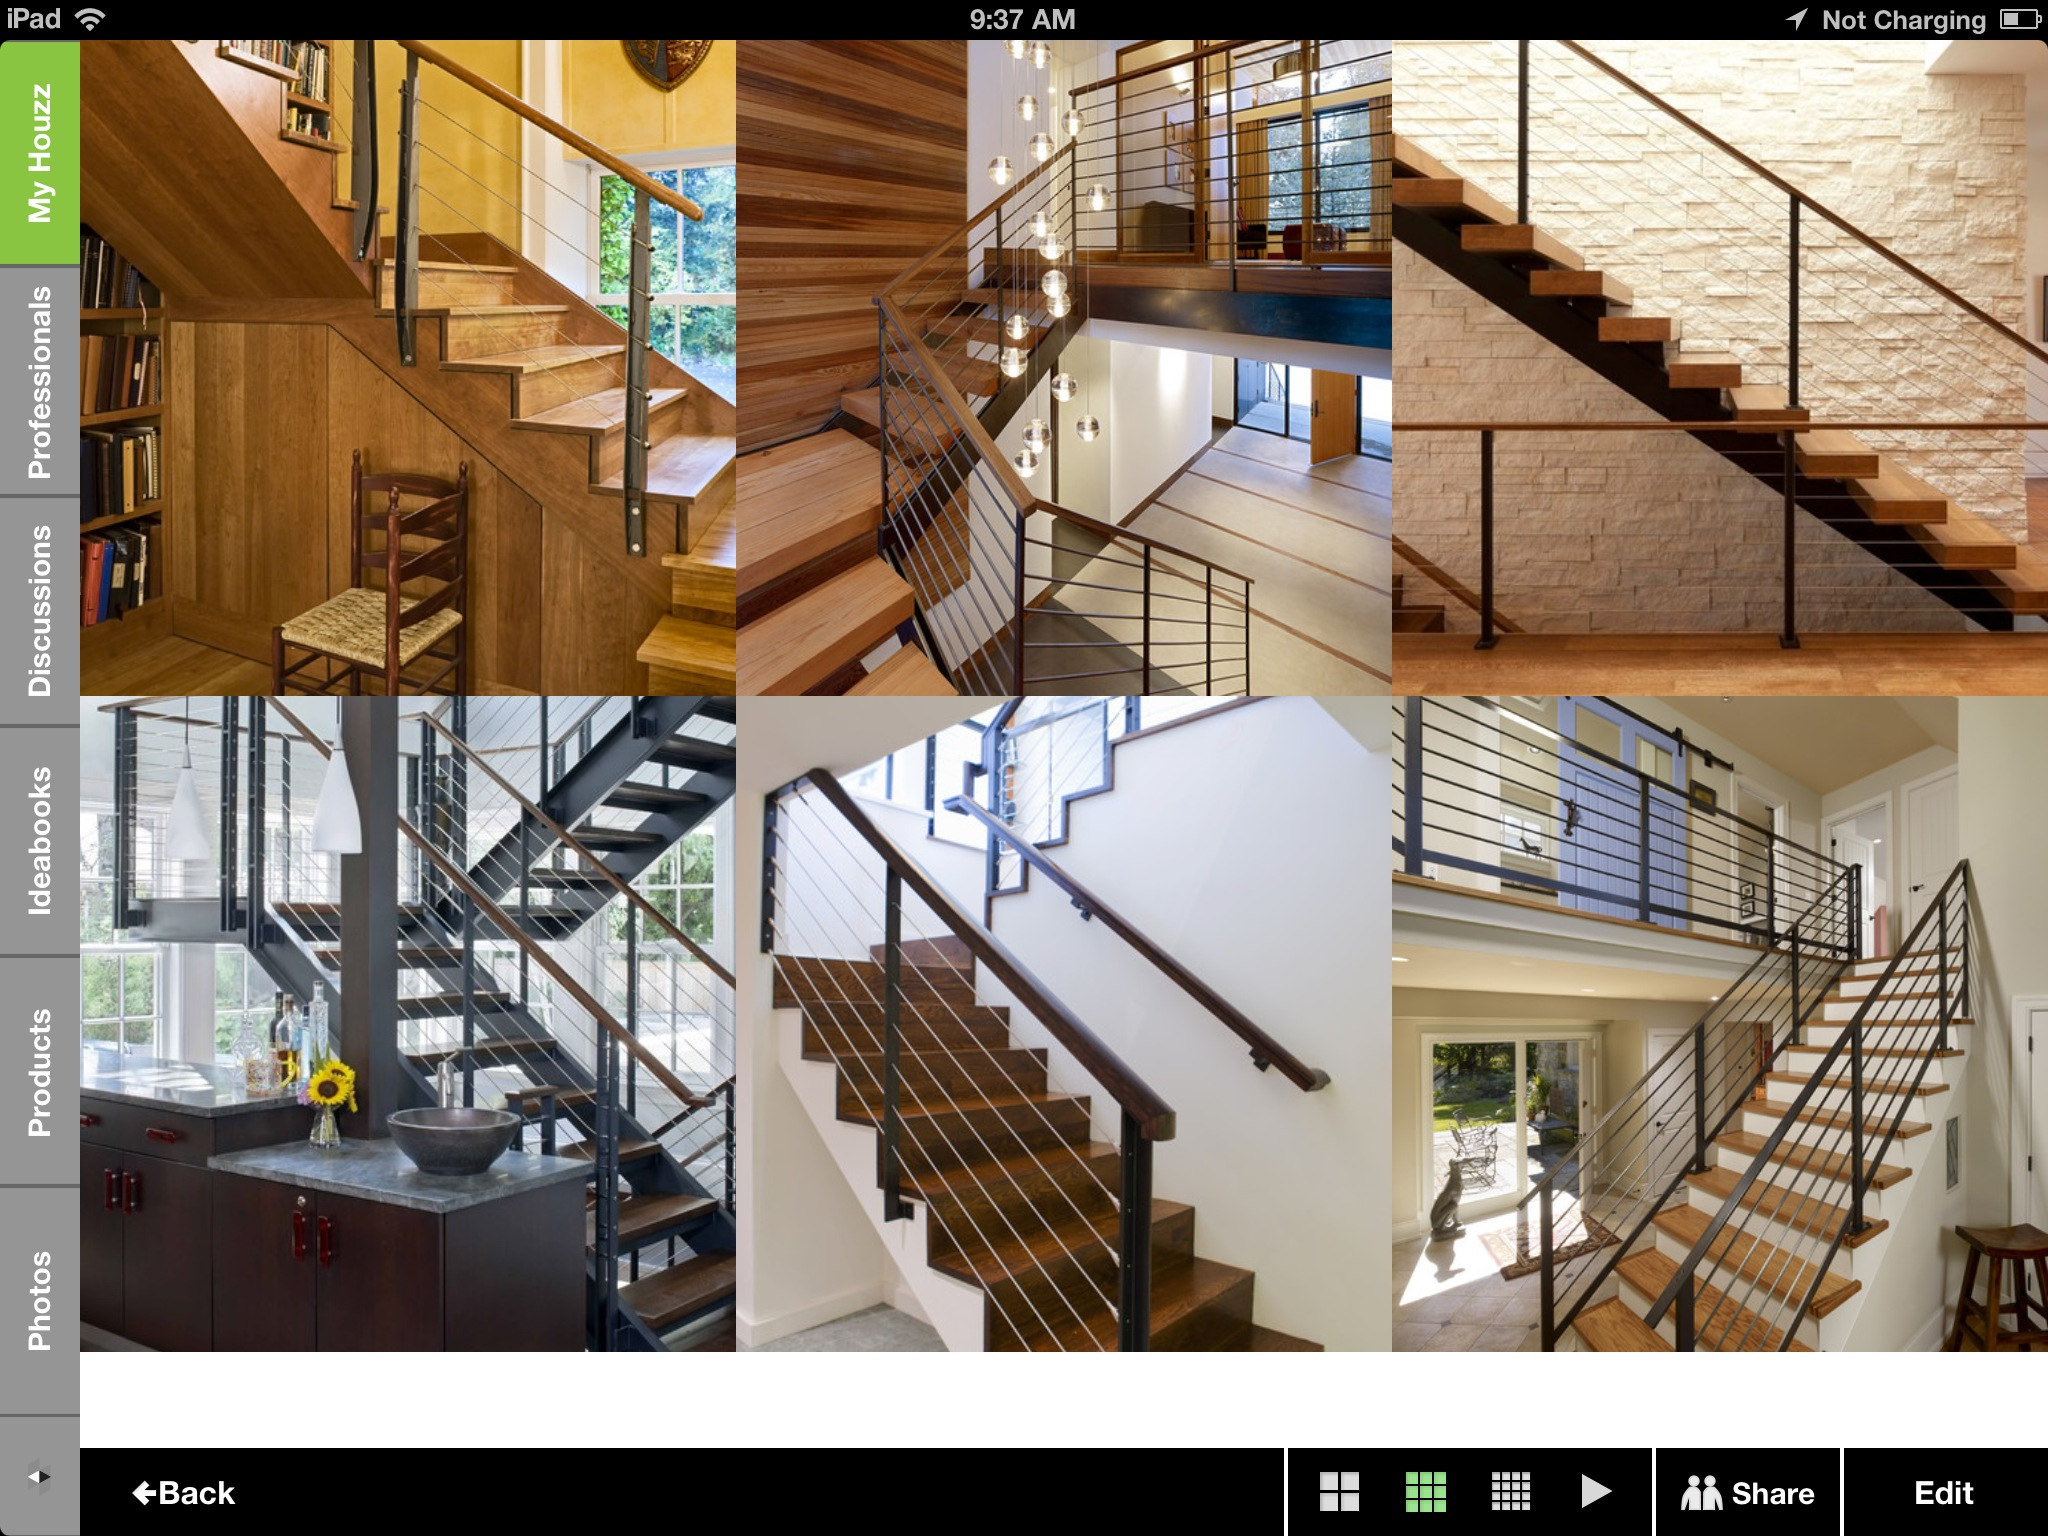 Houzz.com – A Great App for Great Decorating and Remodeling Ideas